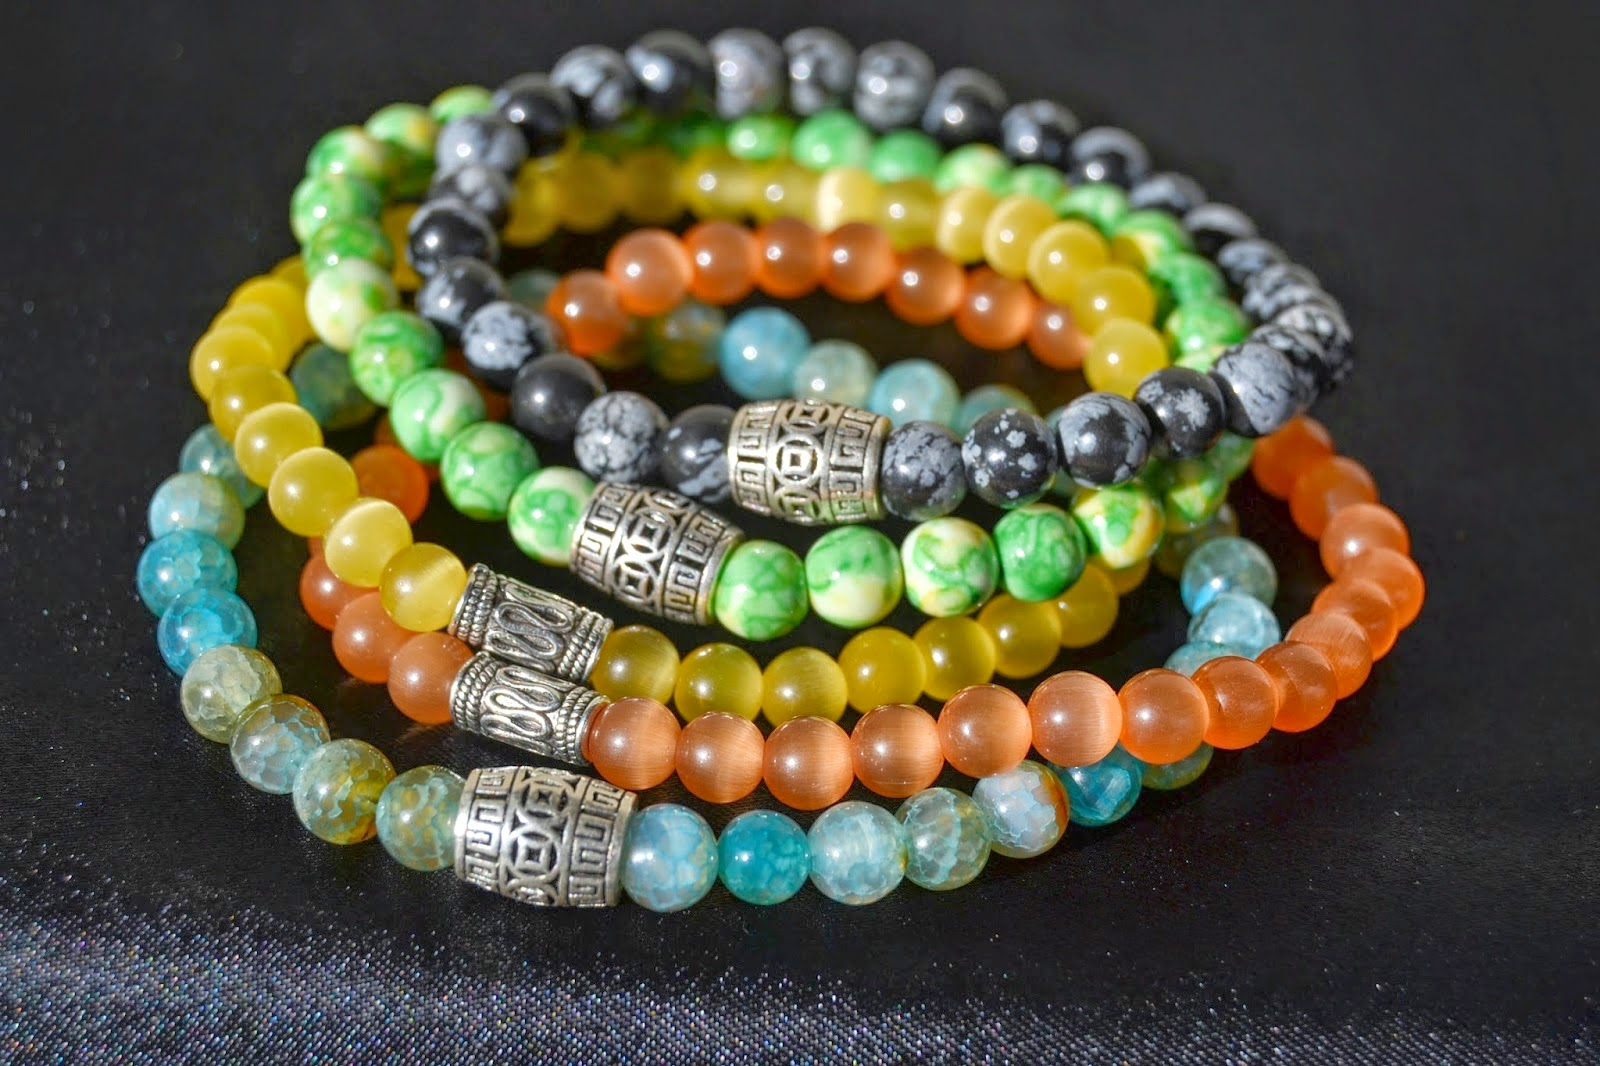 http://www.syriouslyinfashion.com/2014/12/nonagons-colorful-stylish-bracelets.html